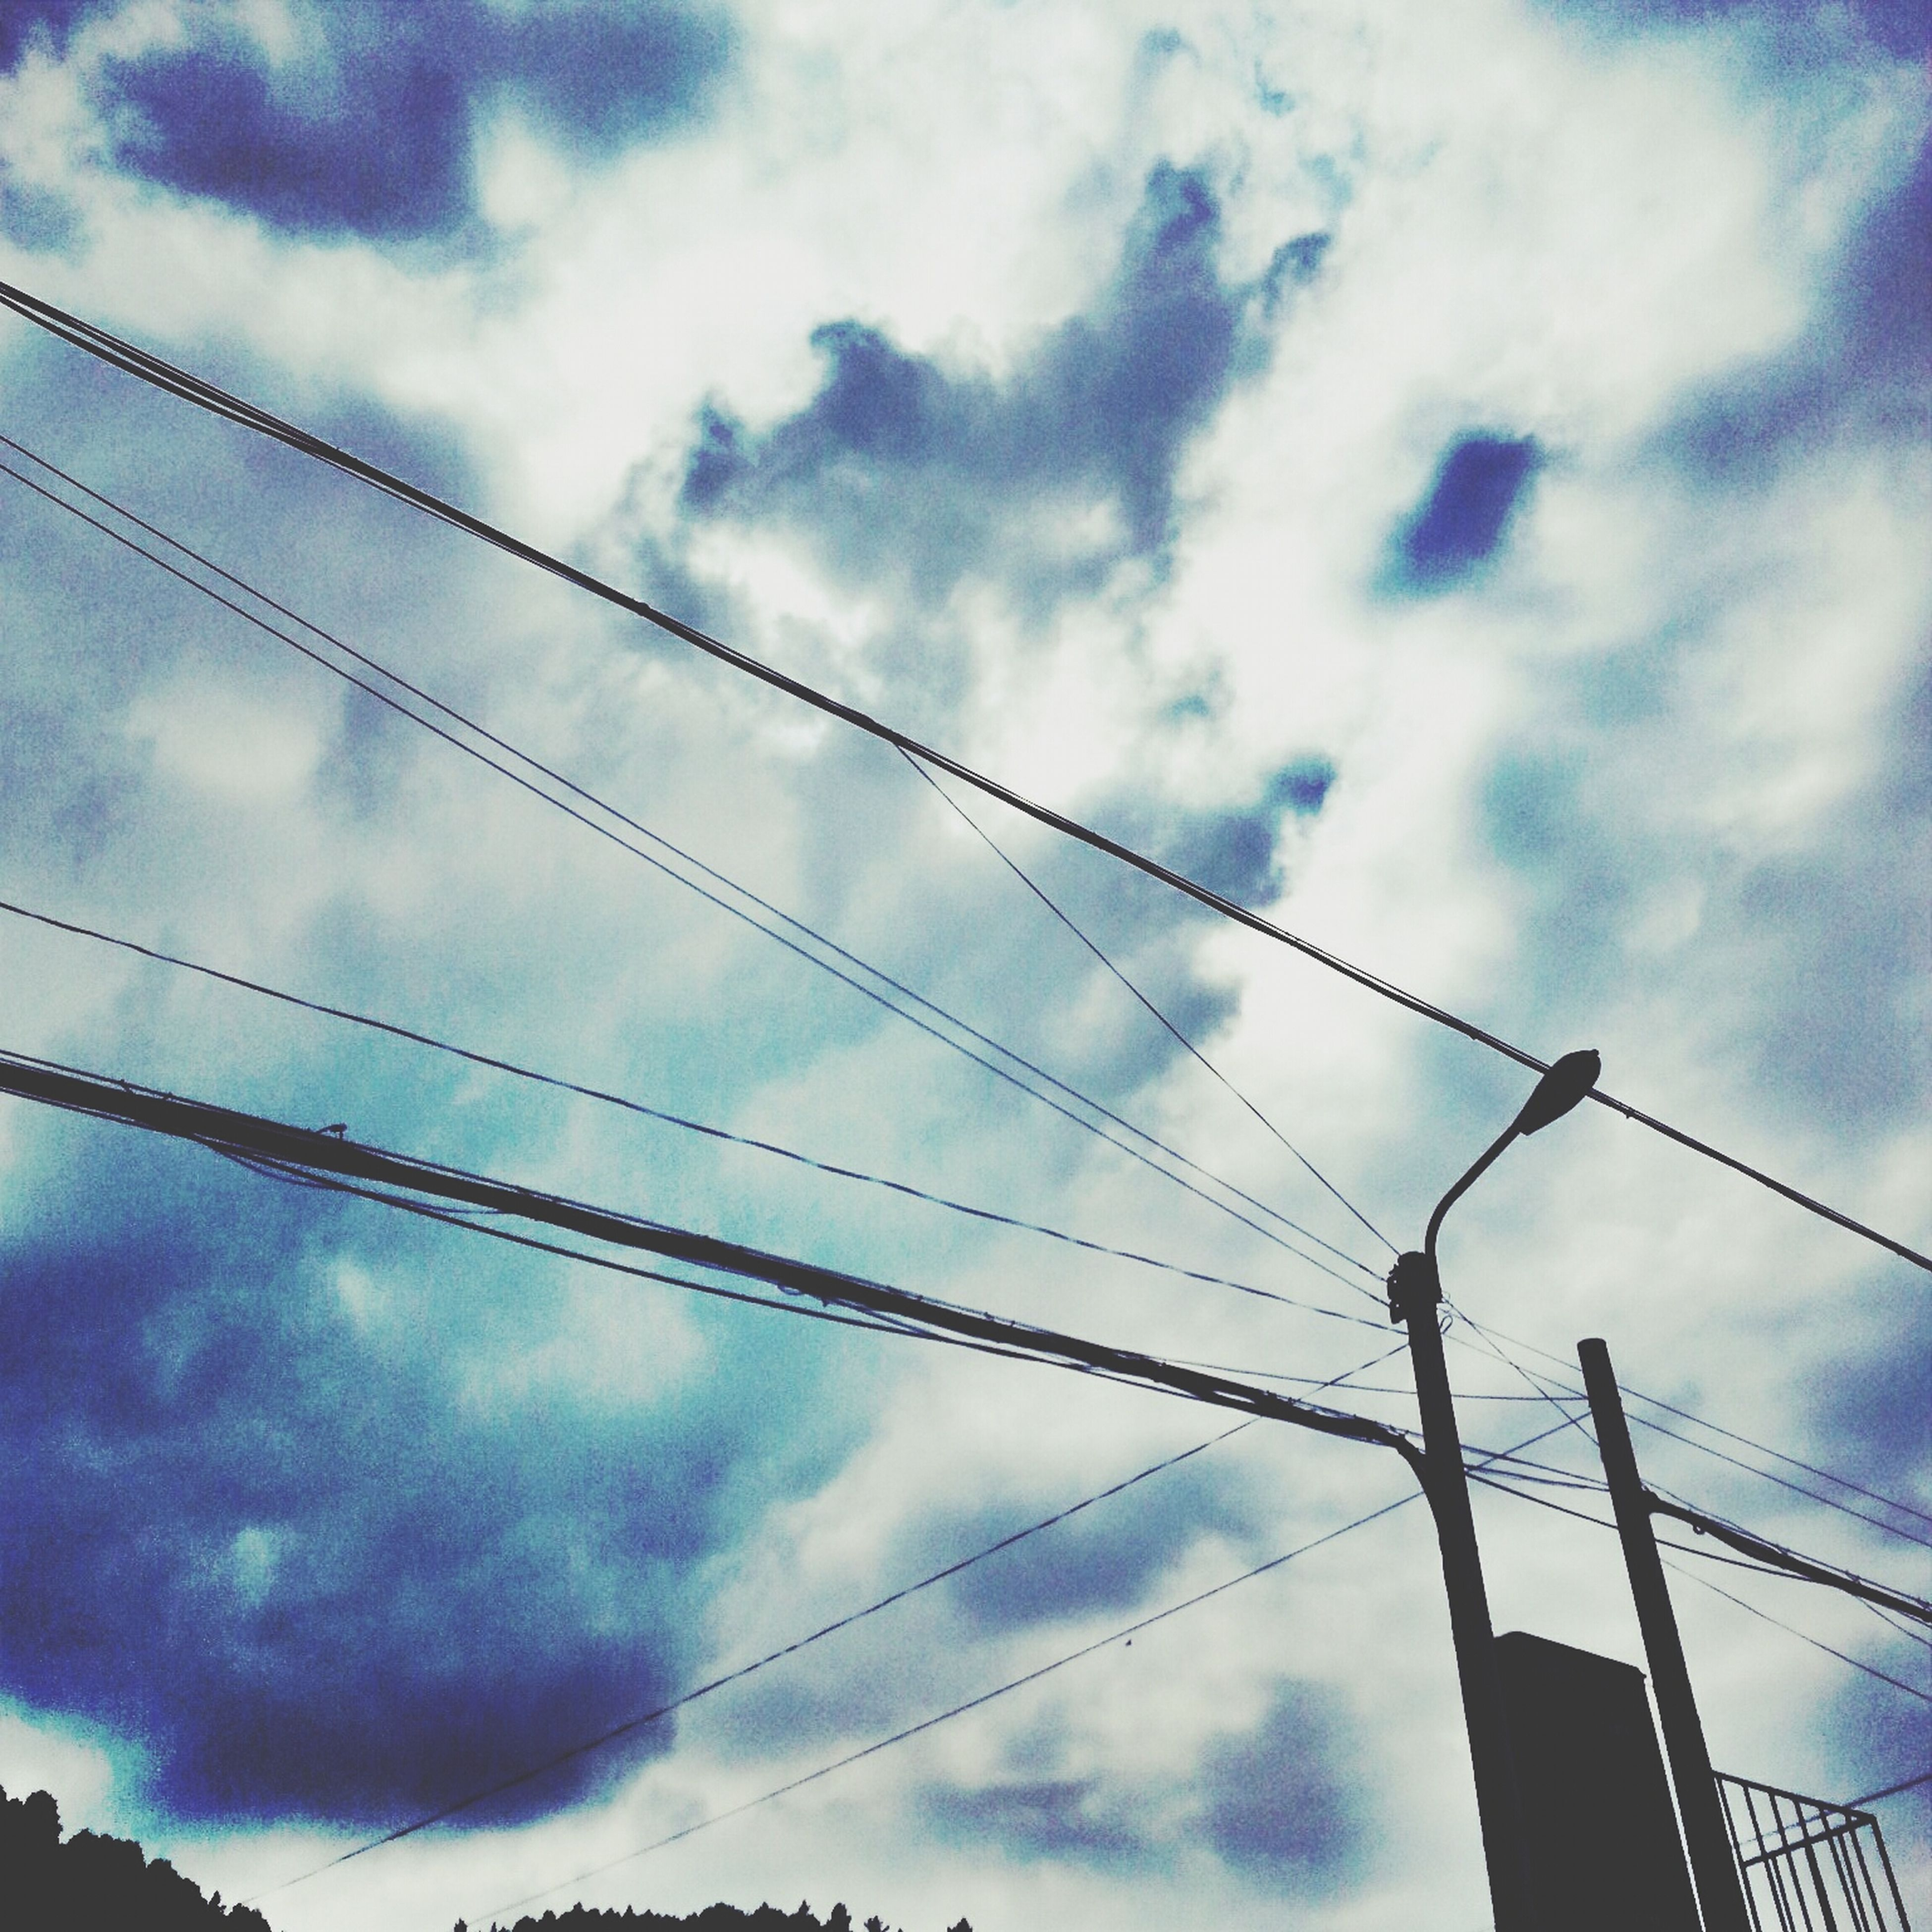 low angle view, sky, power line, connection, cloud - sky, cable, power supply, electricity pylon, cloudy, electricity, cloud, silhouette, fuel and power generation, technology, power cable, blue, built structure, outdoors, no people, weather